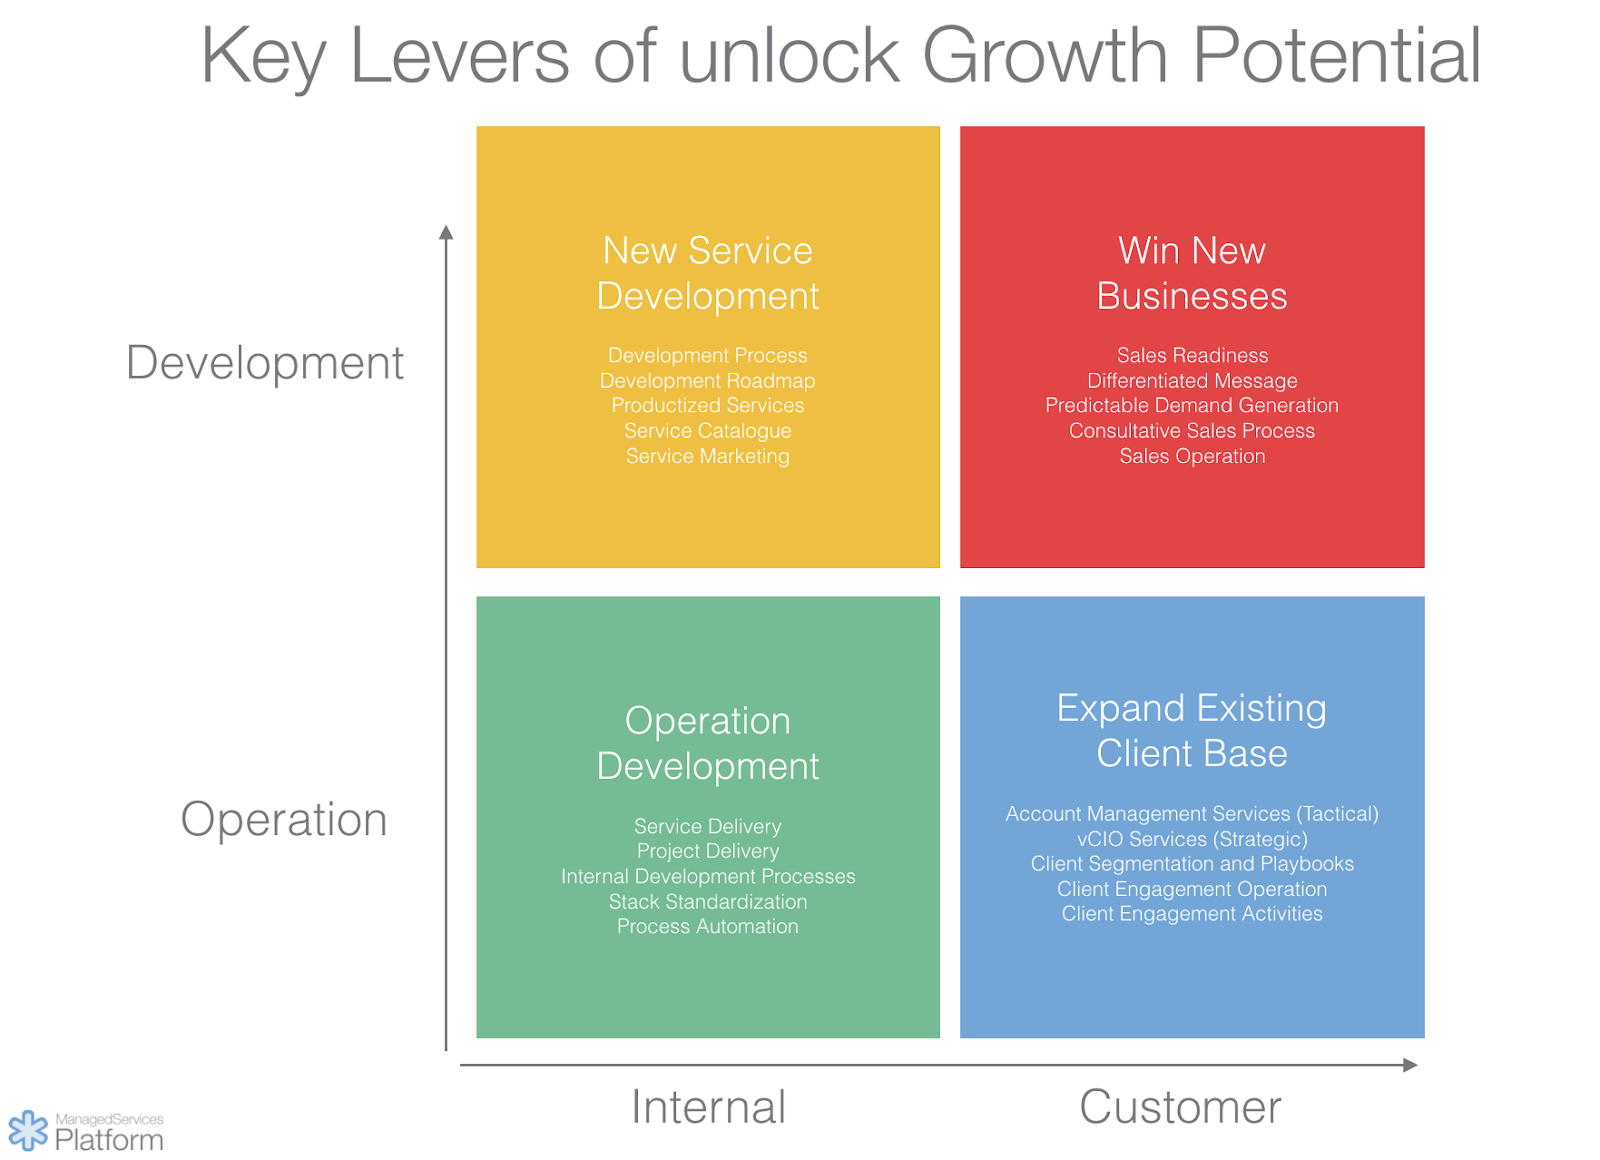 Key level of unlock MSP growth potential